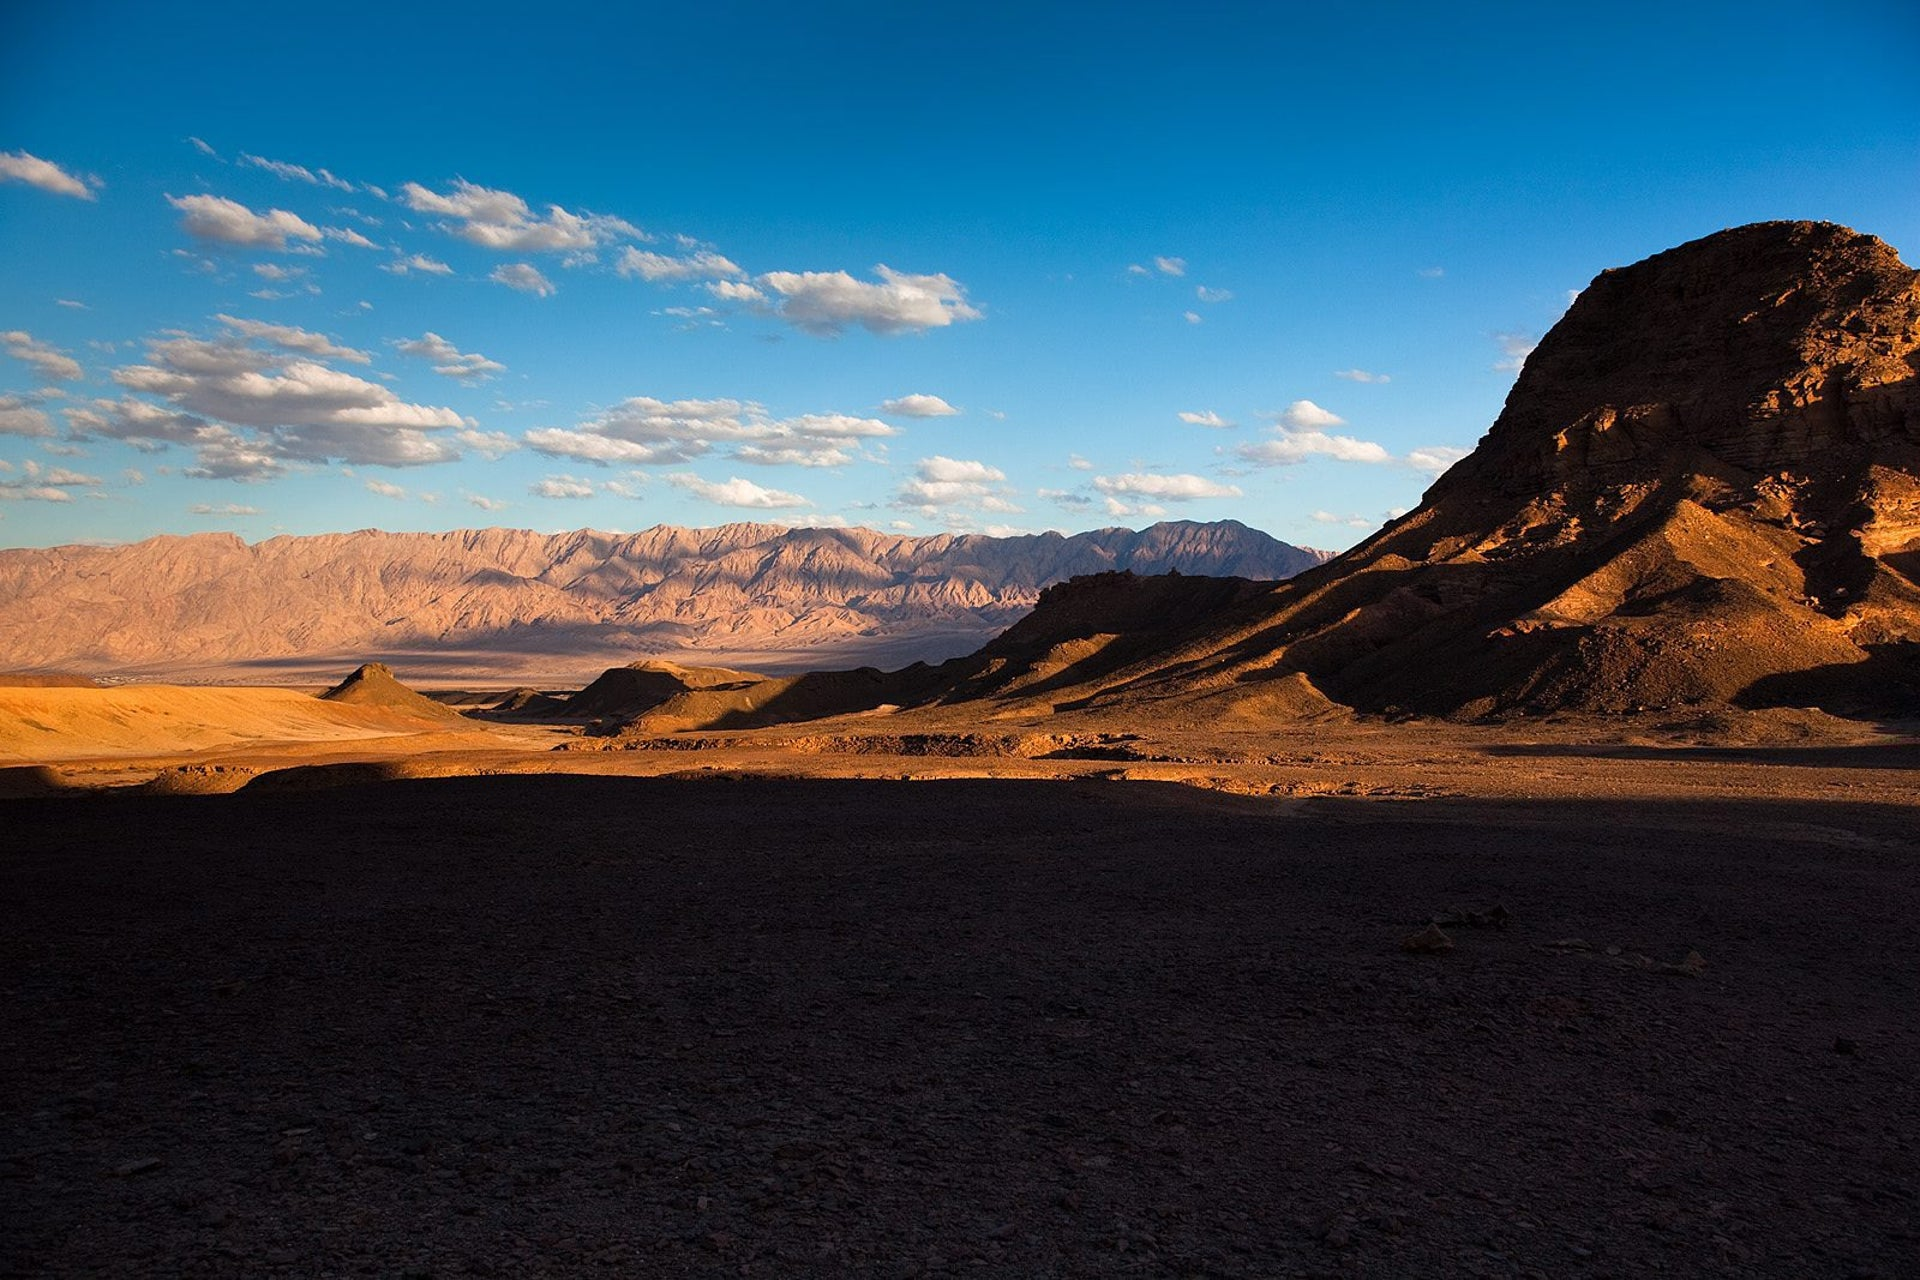 Late afternoon in Timna Valley. Photo shows stark, waterless desert landscape at Timna: A mountain looms to the right and more hills appear in the background.